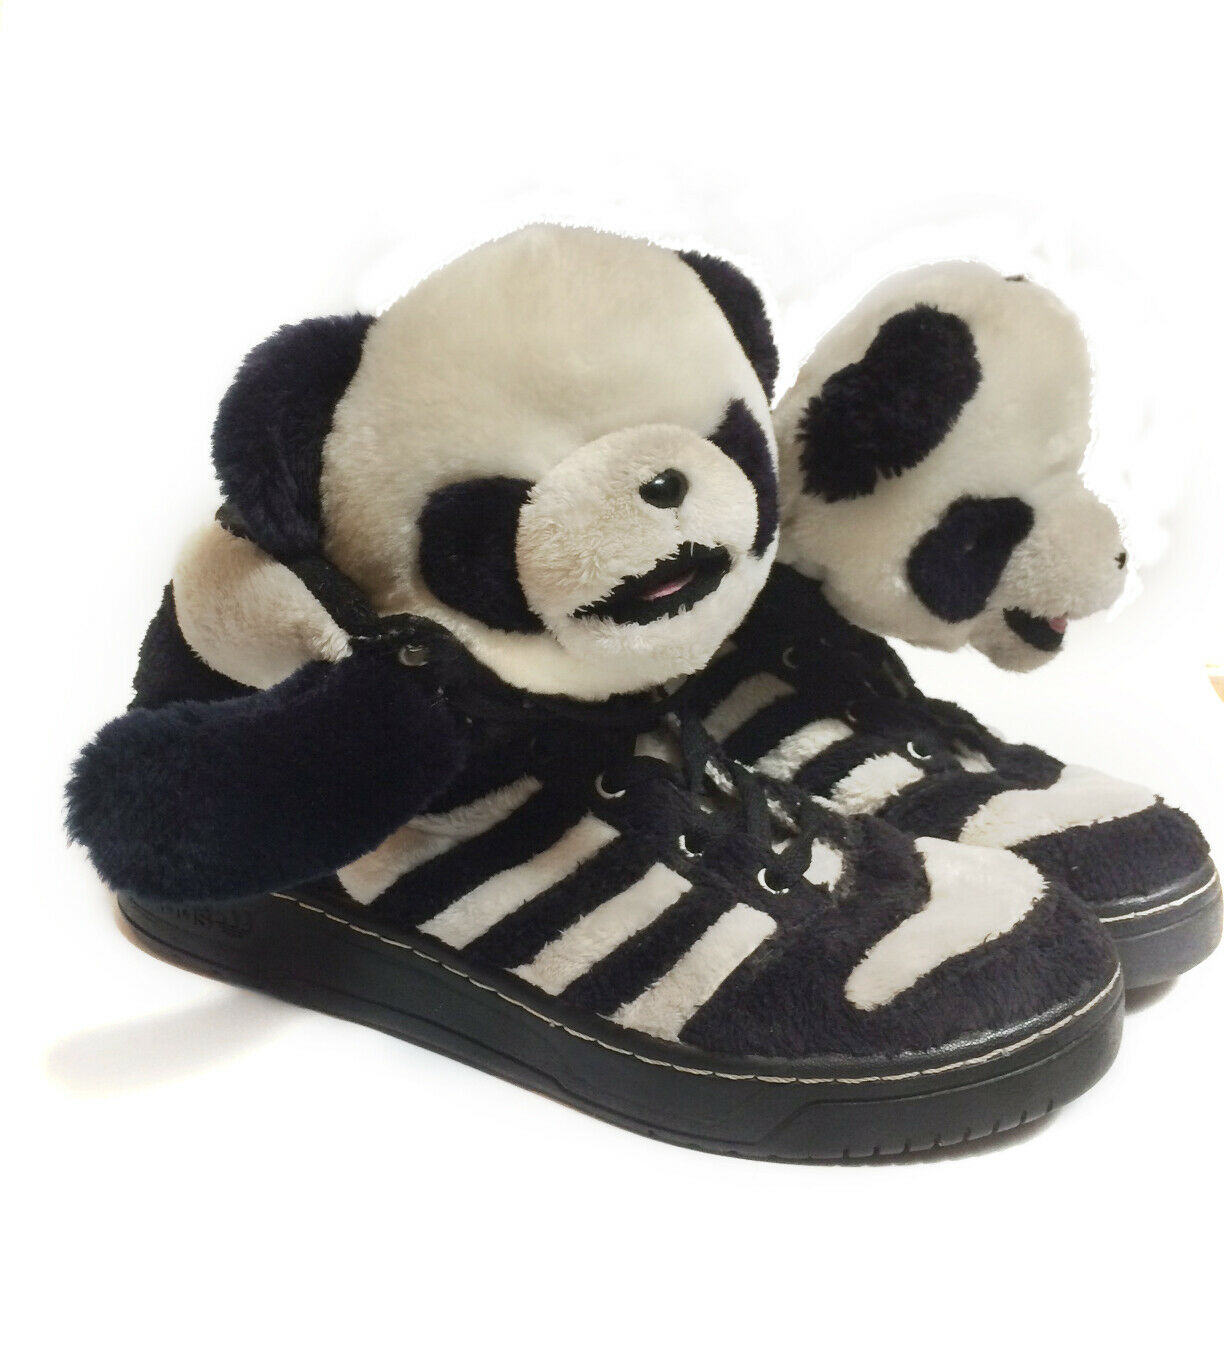 JEREMY SCOTT X ADIDAS Teddy Bear Fuzzy Sneakers Black & White Mens Size 10 US